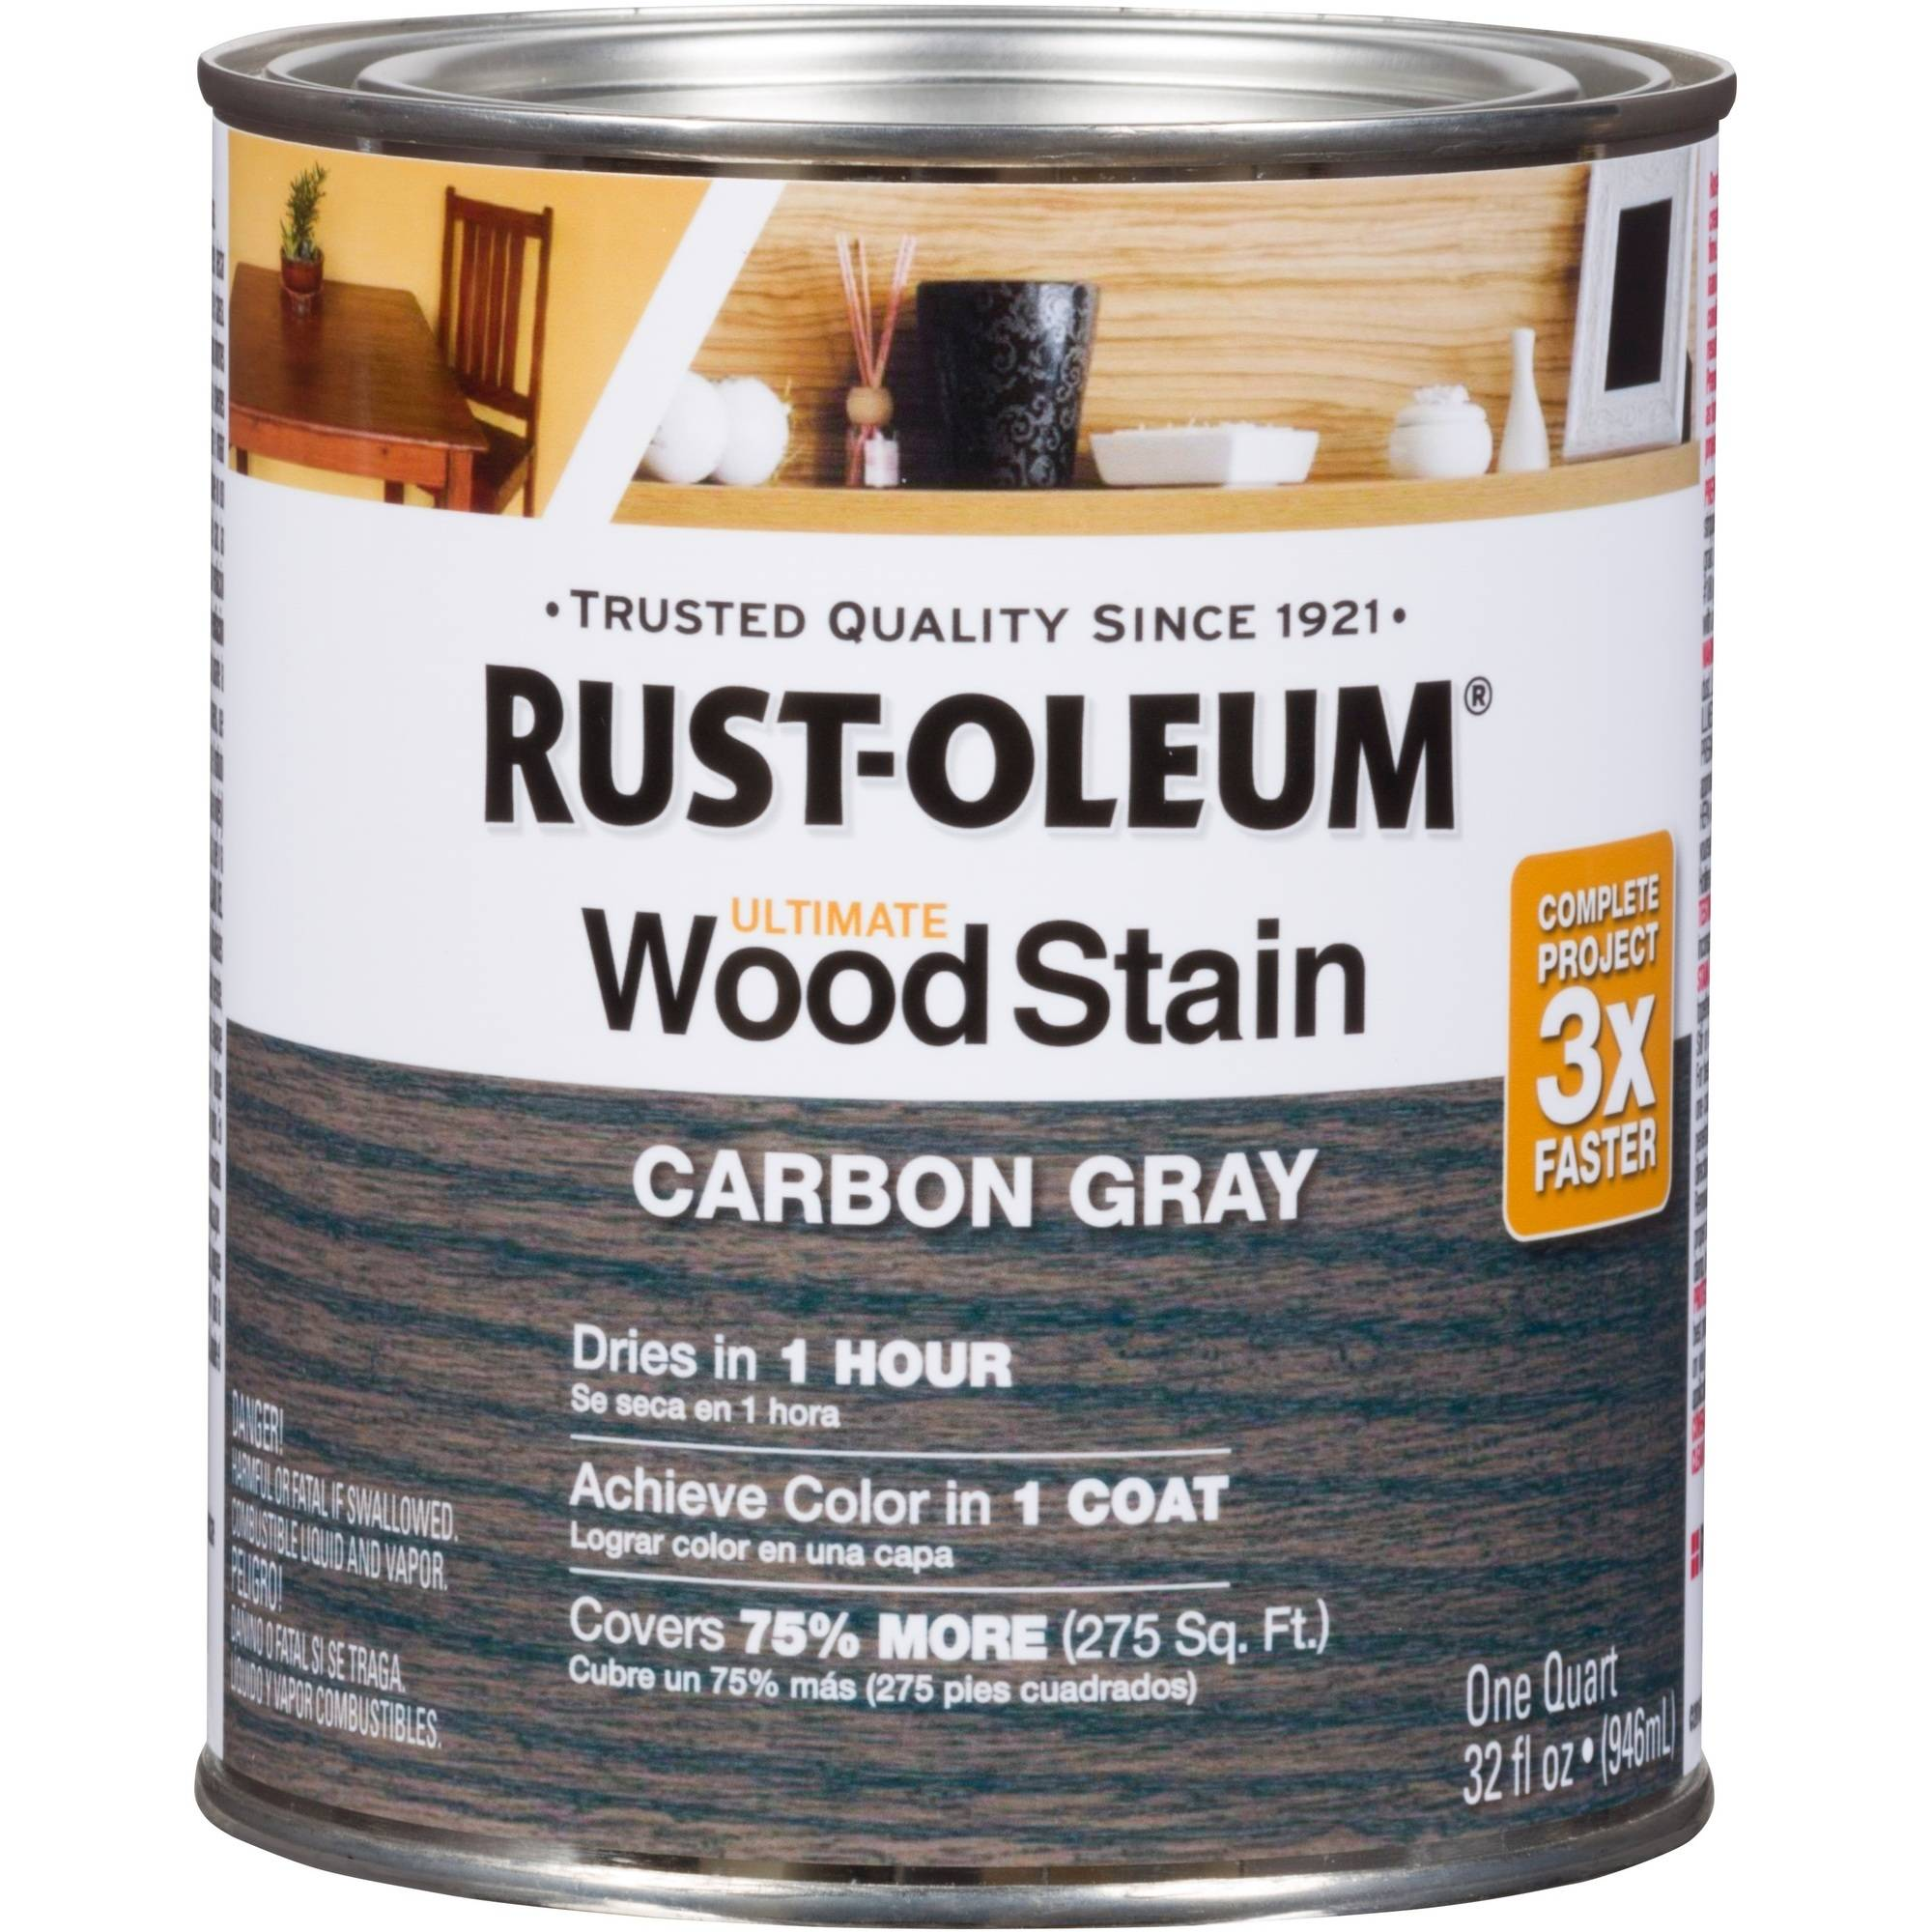 Rust-Oleum Ultimate Wood Stain Quart (Base UPC0002006632035) Color Carbon Gray